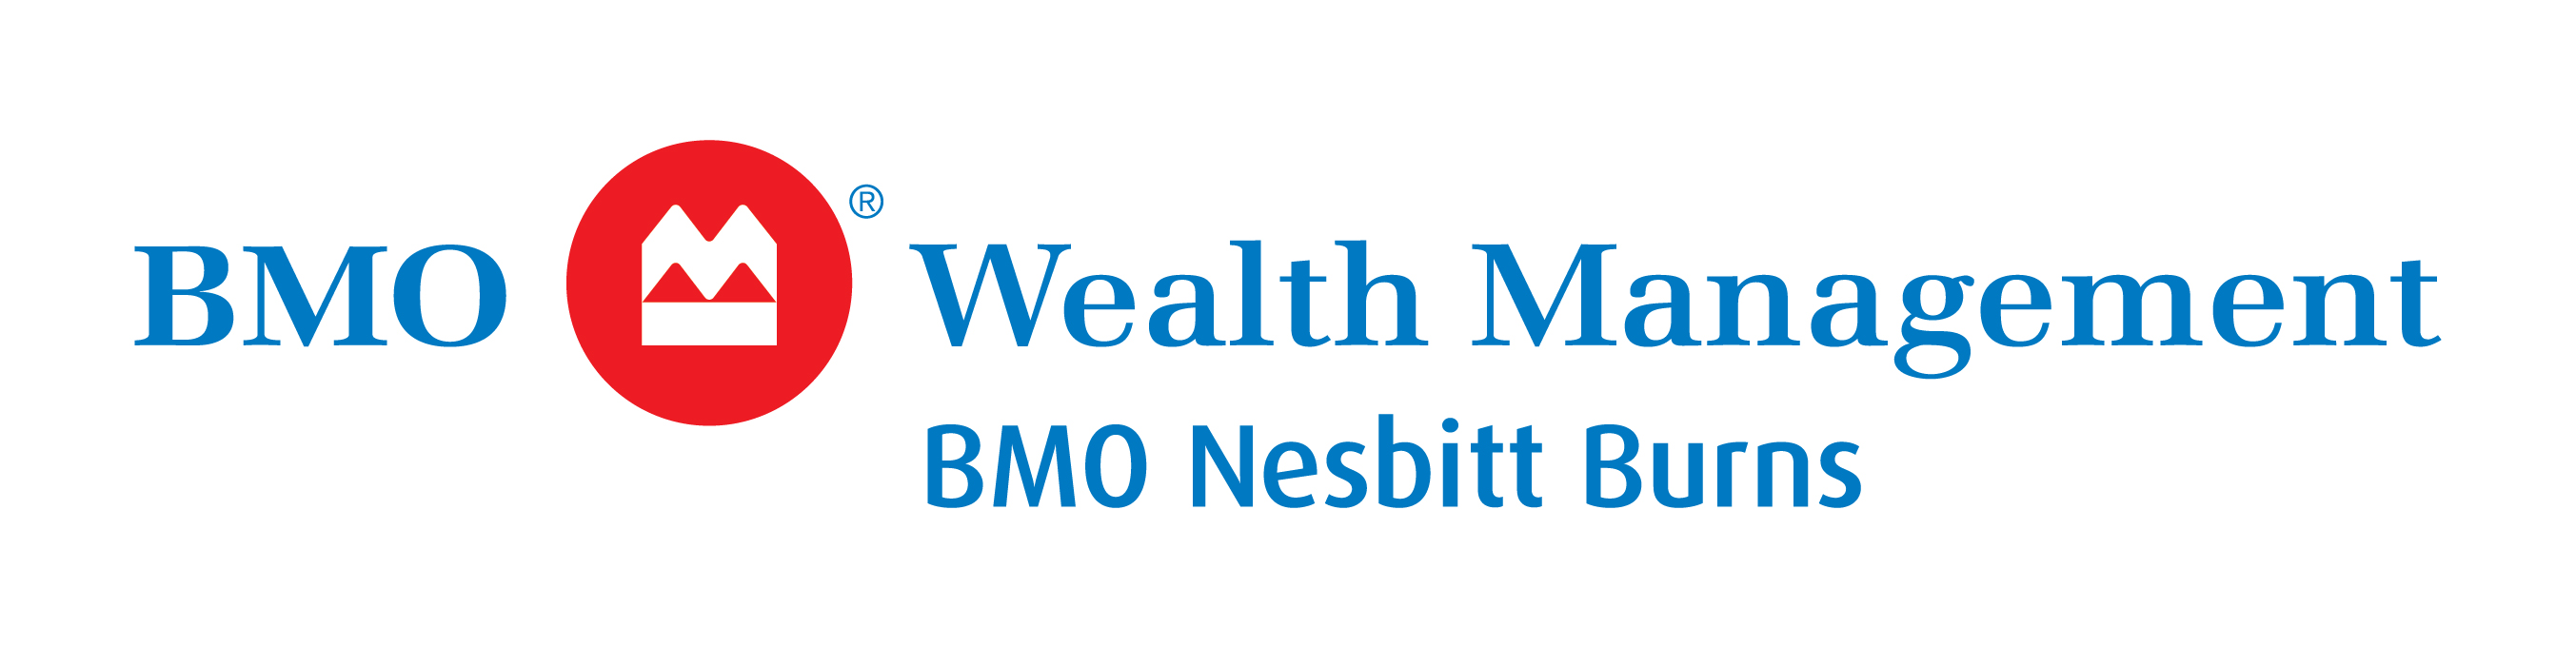 DOUG CAMERON - INVESTMENT ADVISOR  BMO WEALTH MANAGEMENT